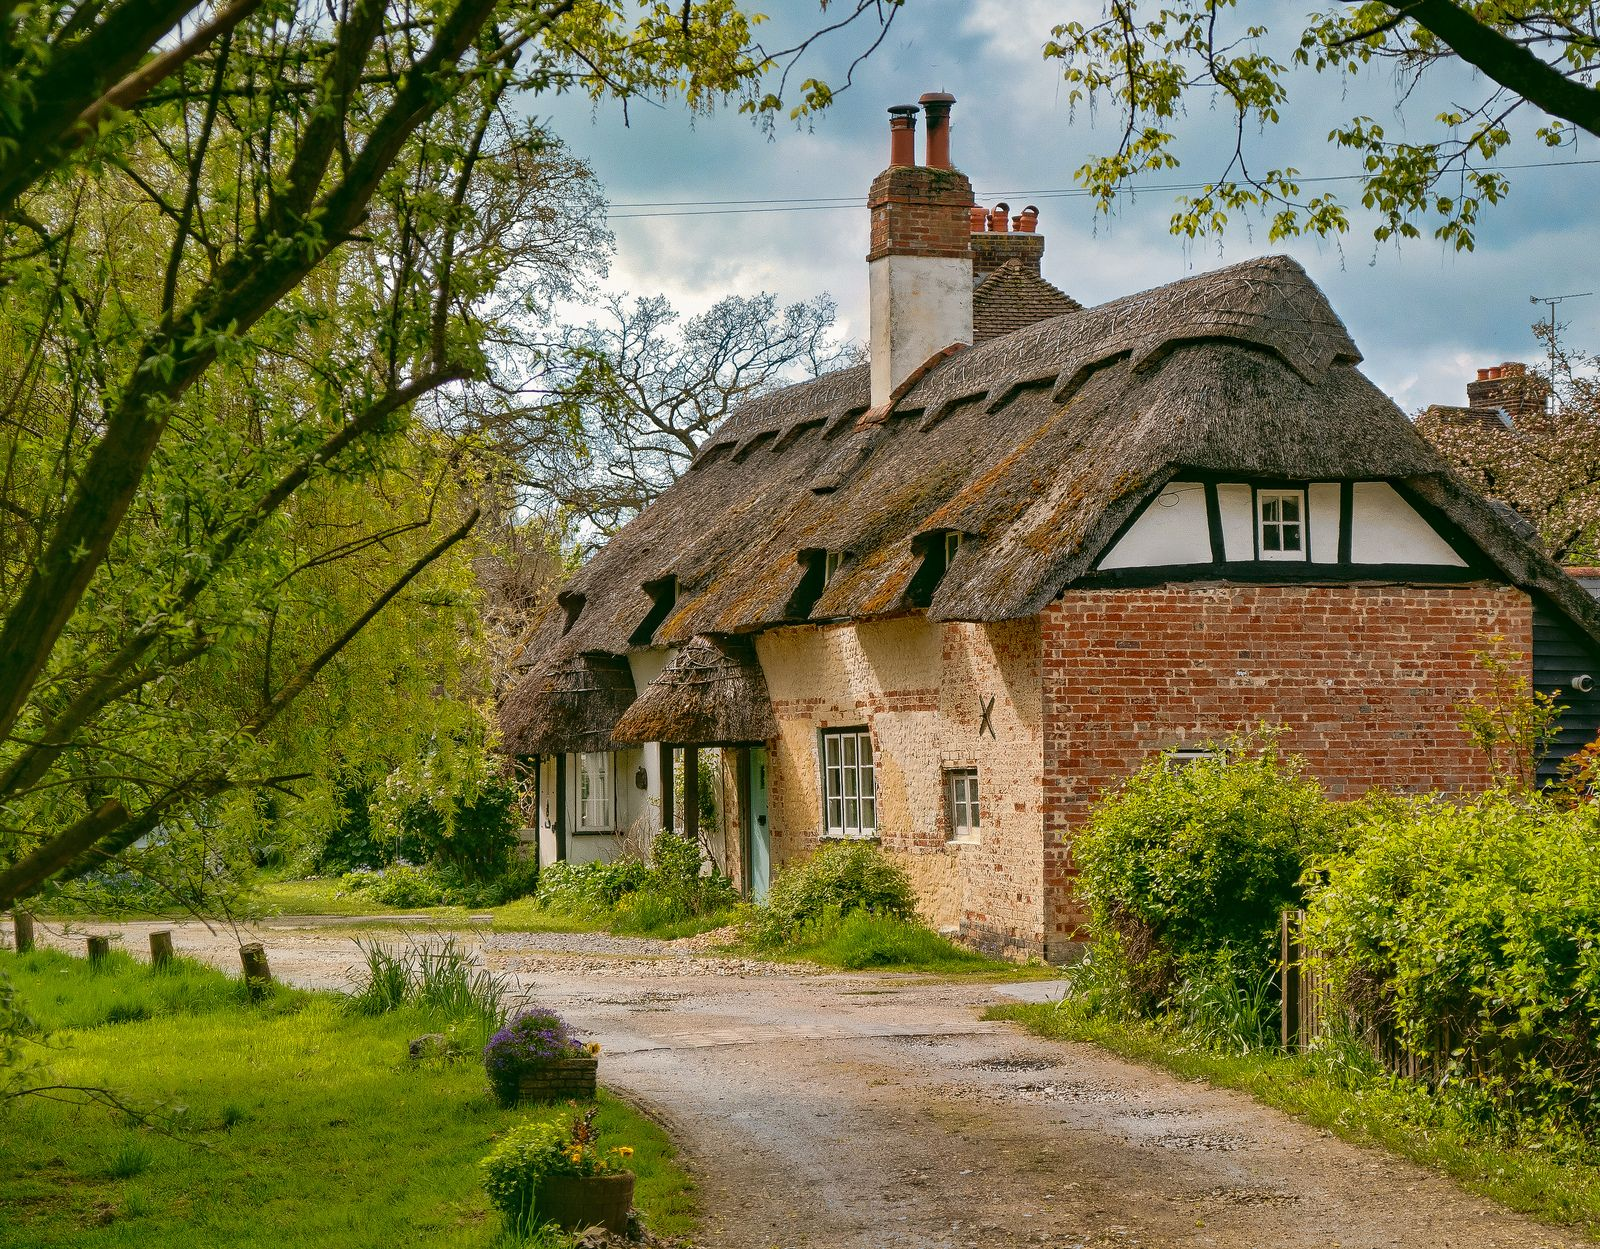 These 16th Century thatched cottages in Charlton, Andover